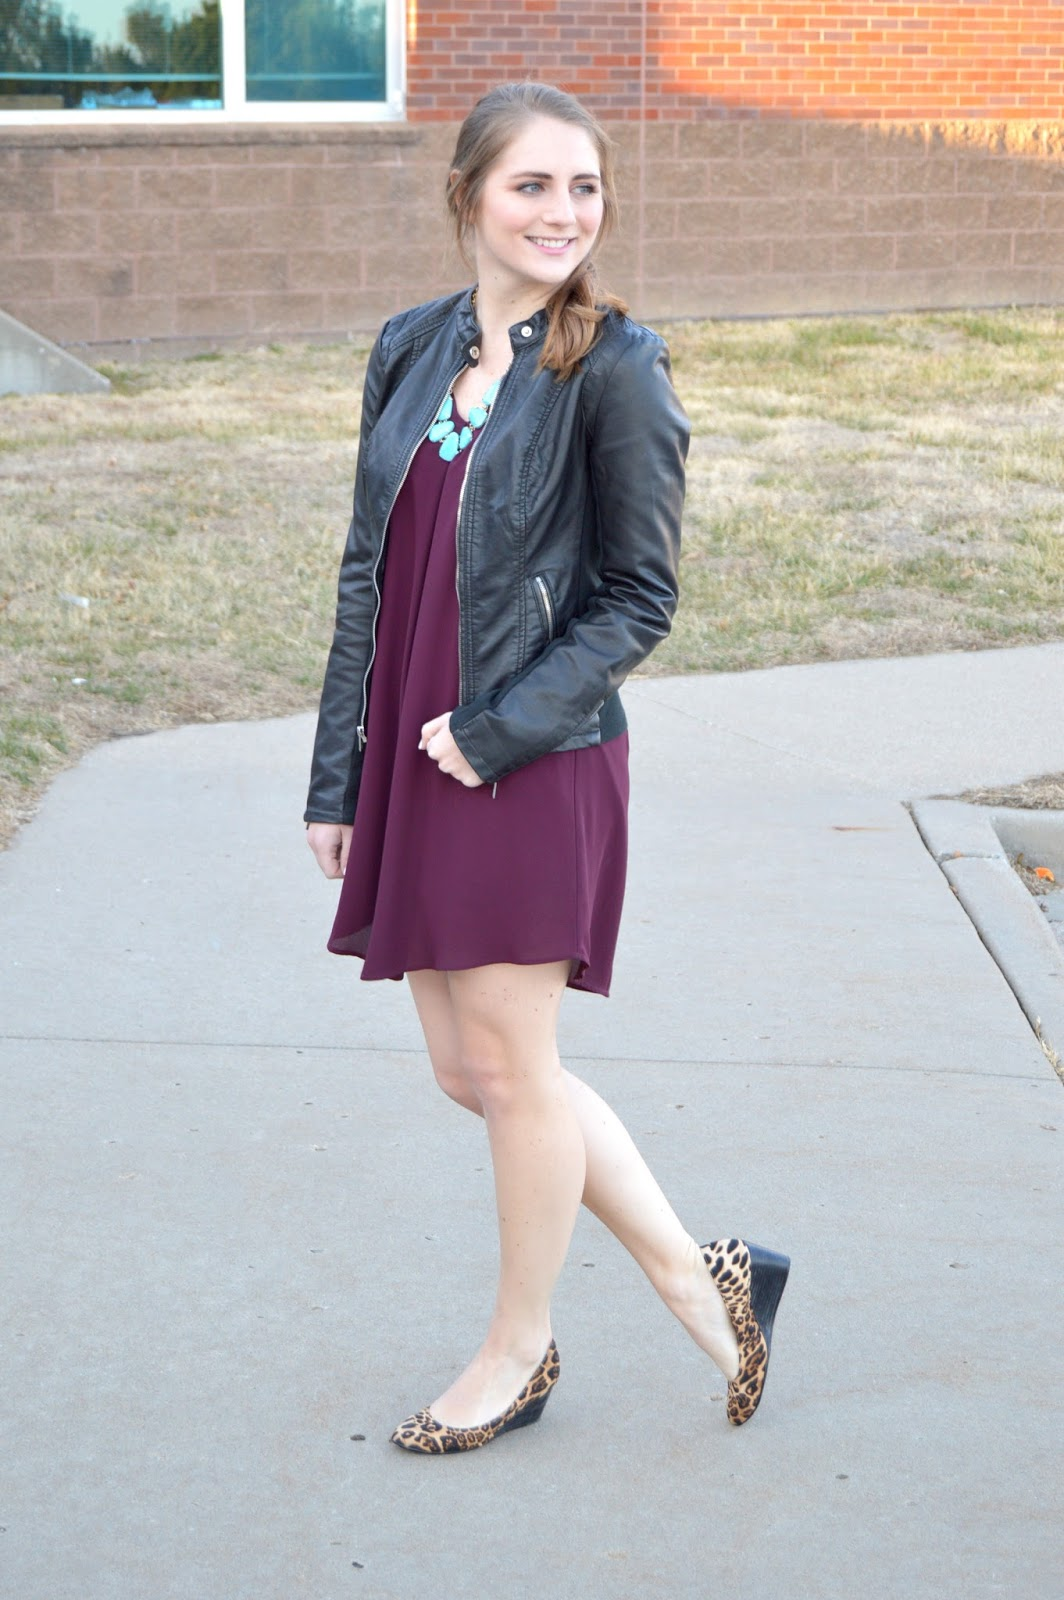 maroon dress with a leather jacket